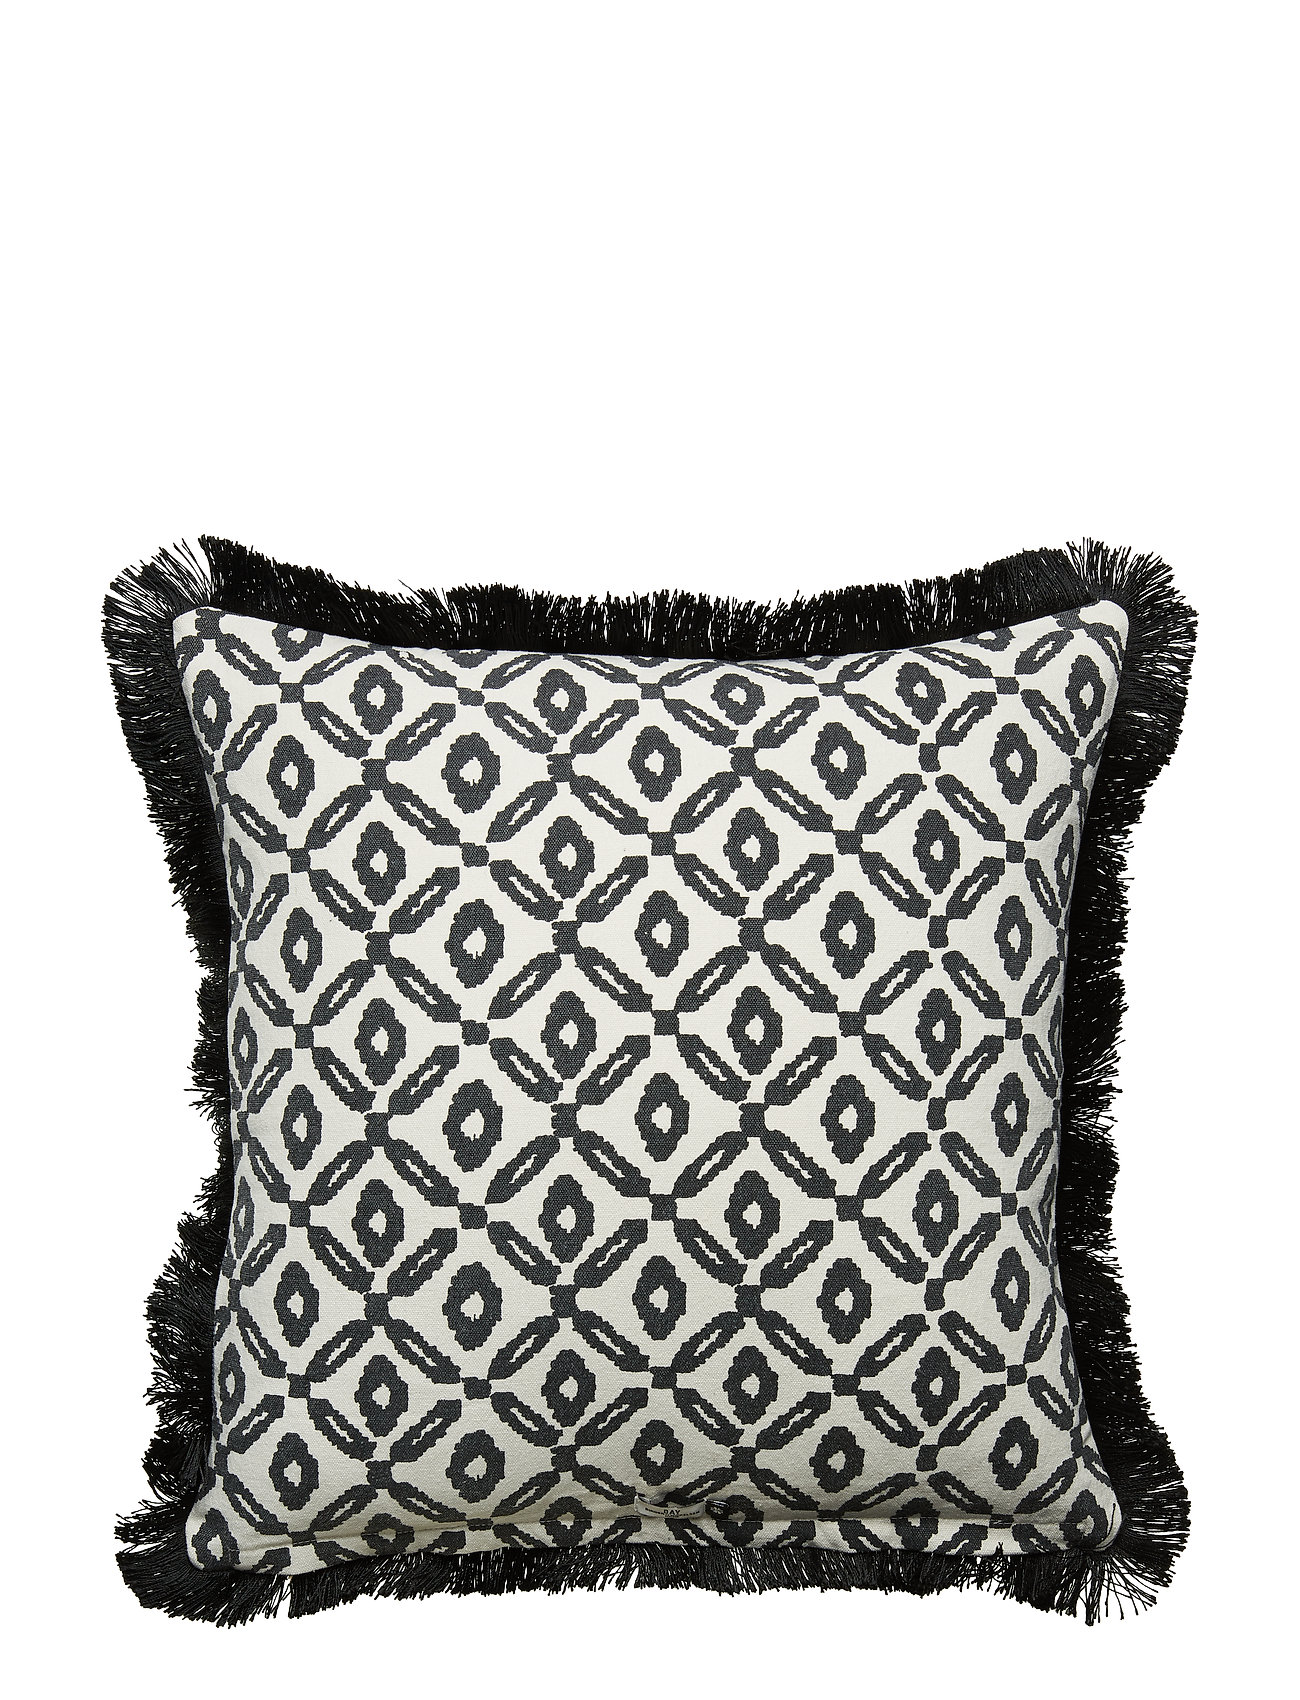 DAY Home Day Printed Cushion Cover - BLACK/WHITE, PRINTED